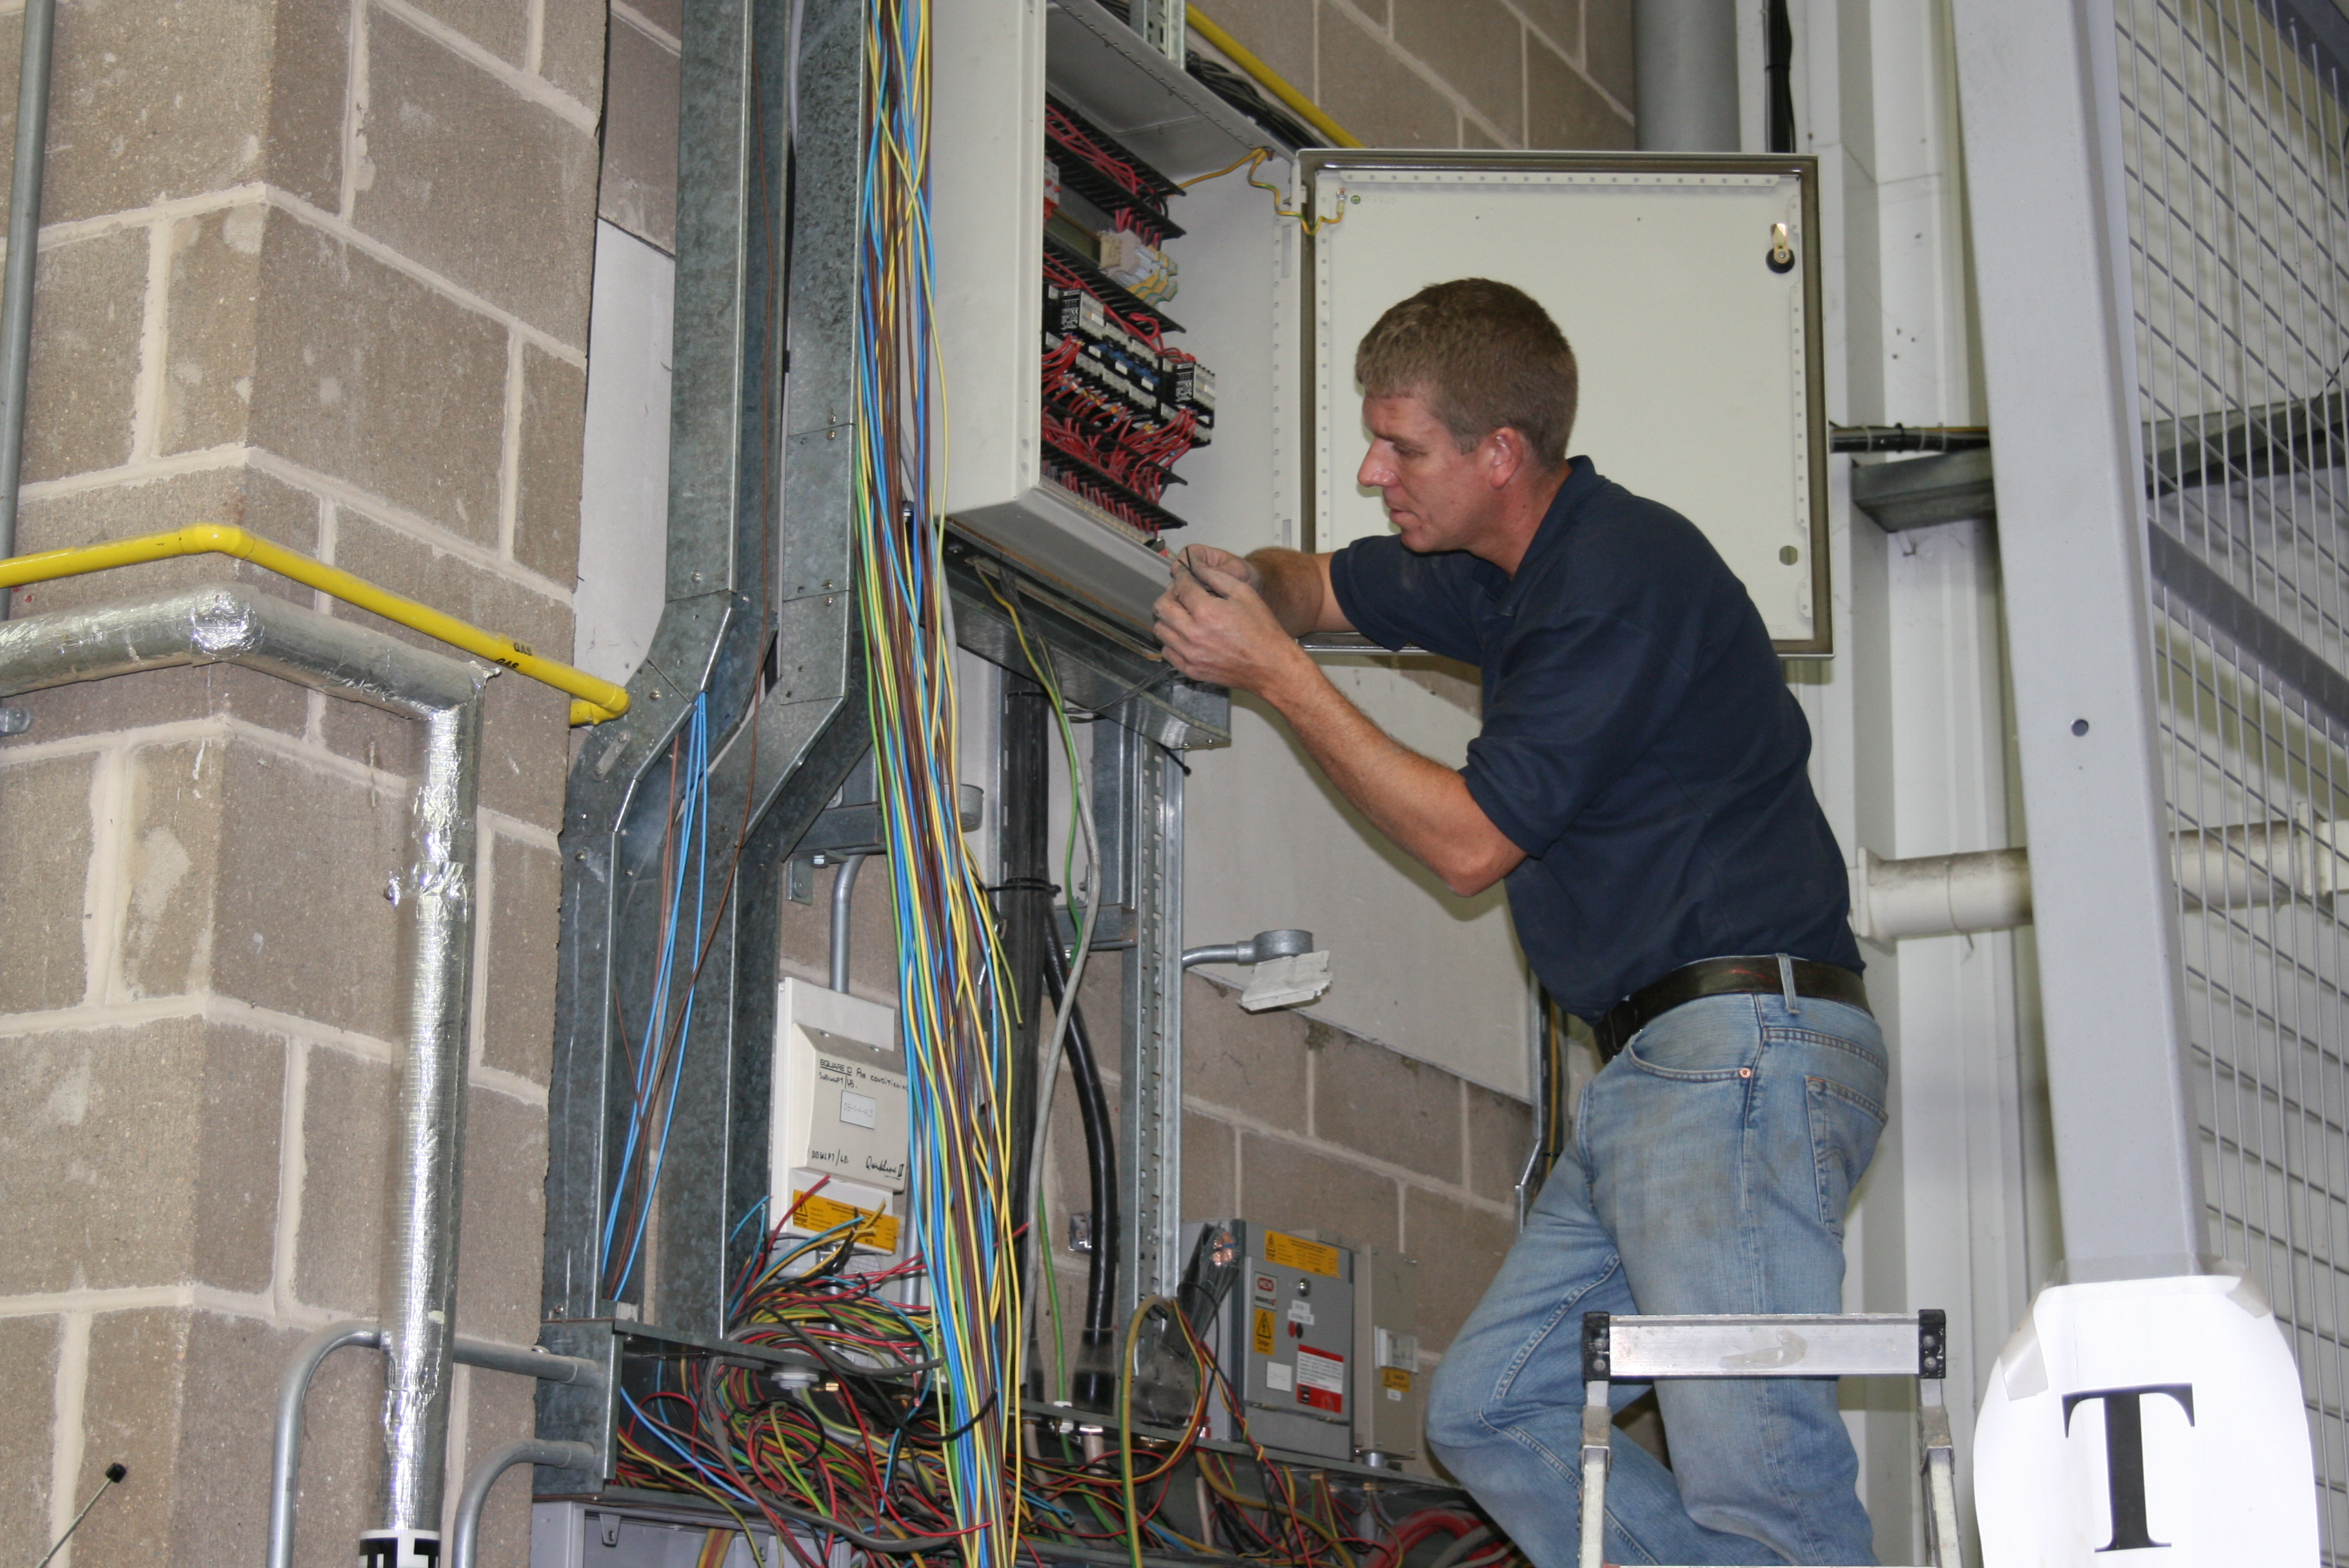 Holbrook Electrical And Engineering Testing Inspection Tracing Wiring Behind Walls Damaged Cables